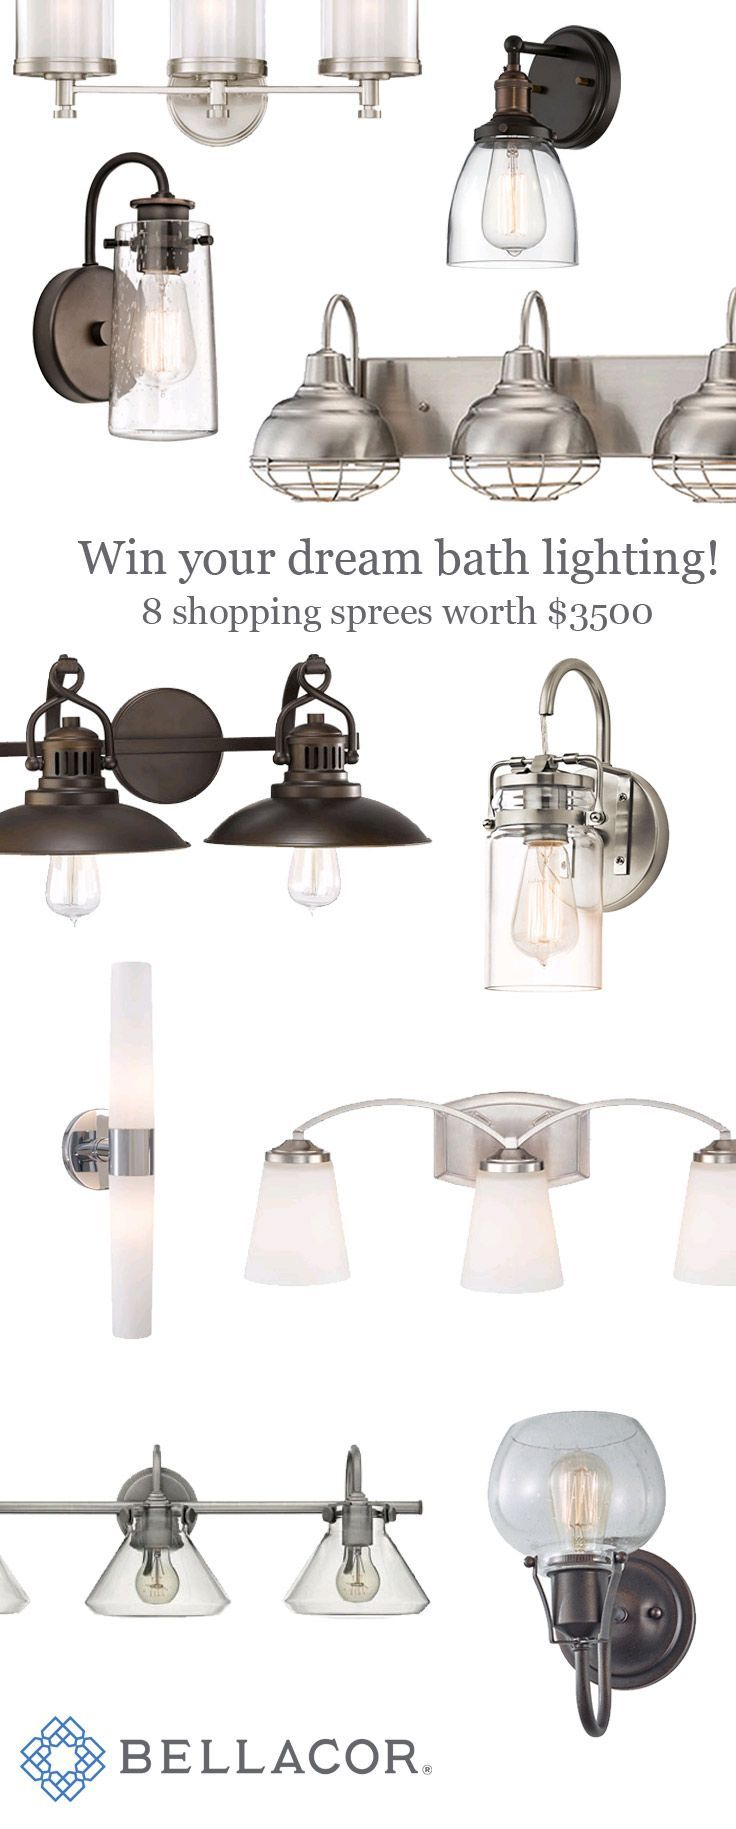 $500 Bath Lighting Shopping Sprees! Pick Out Your Dream